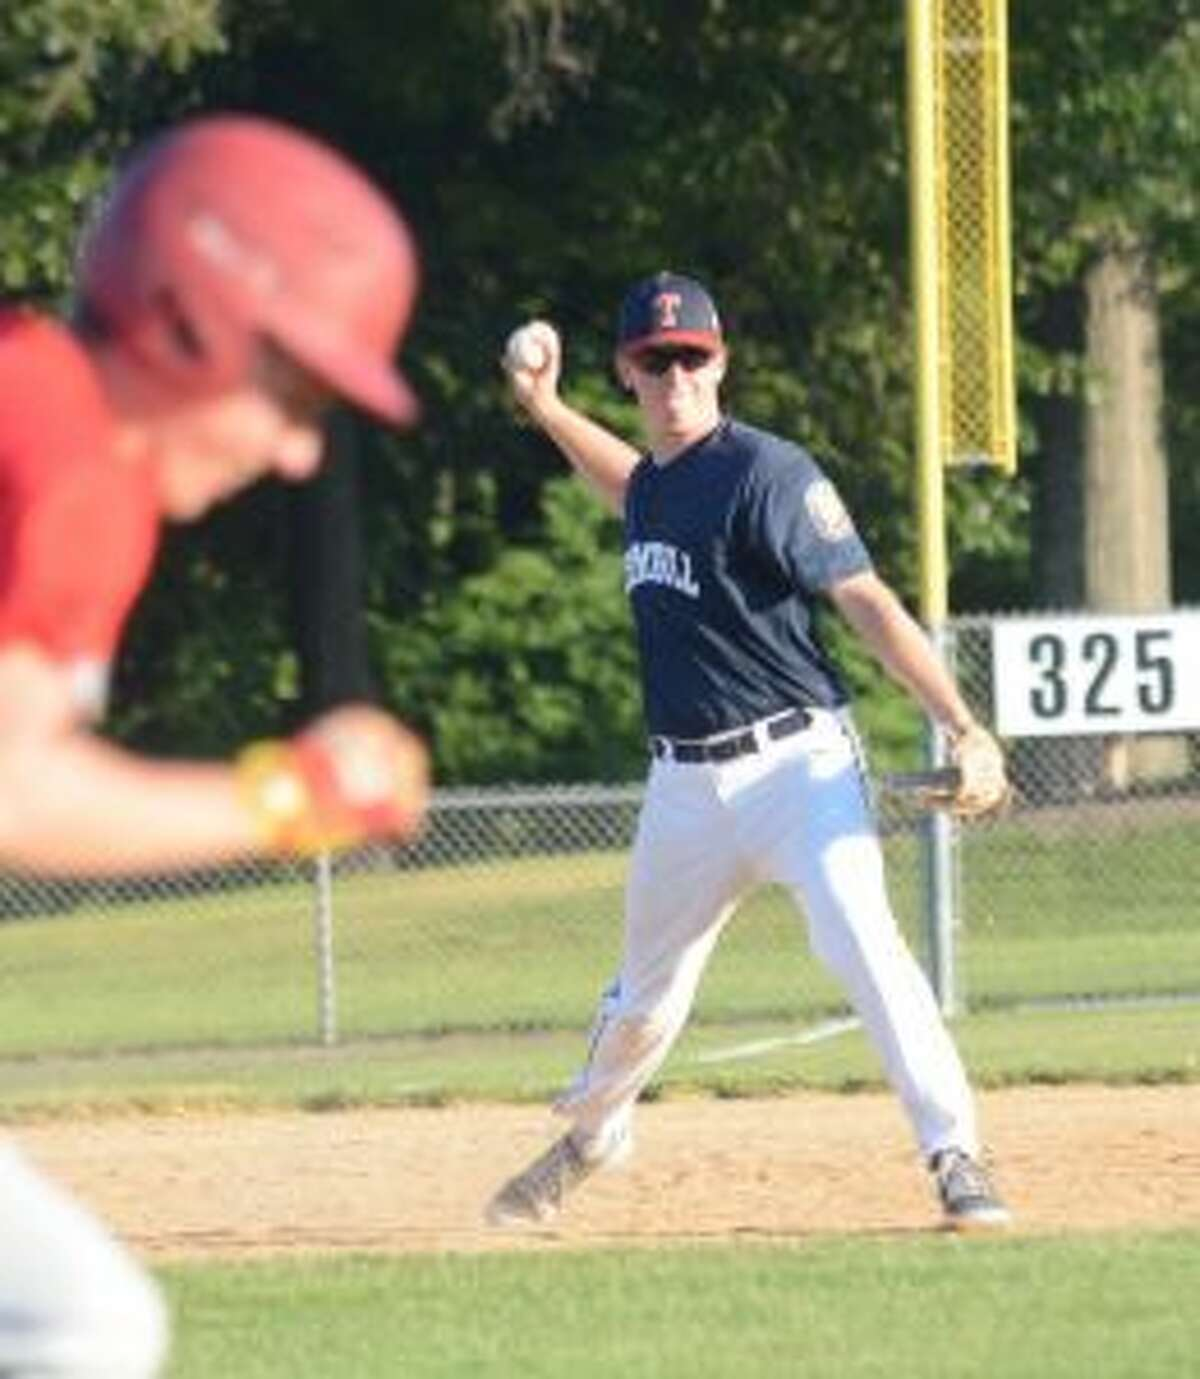 Ryan Vawter played a solid third base, walked three times, and scored a run.